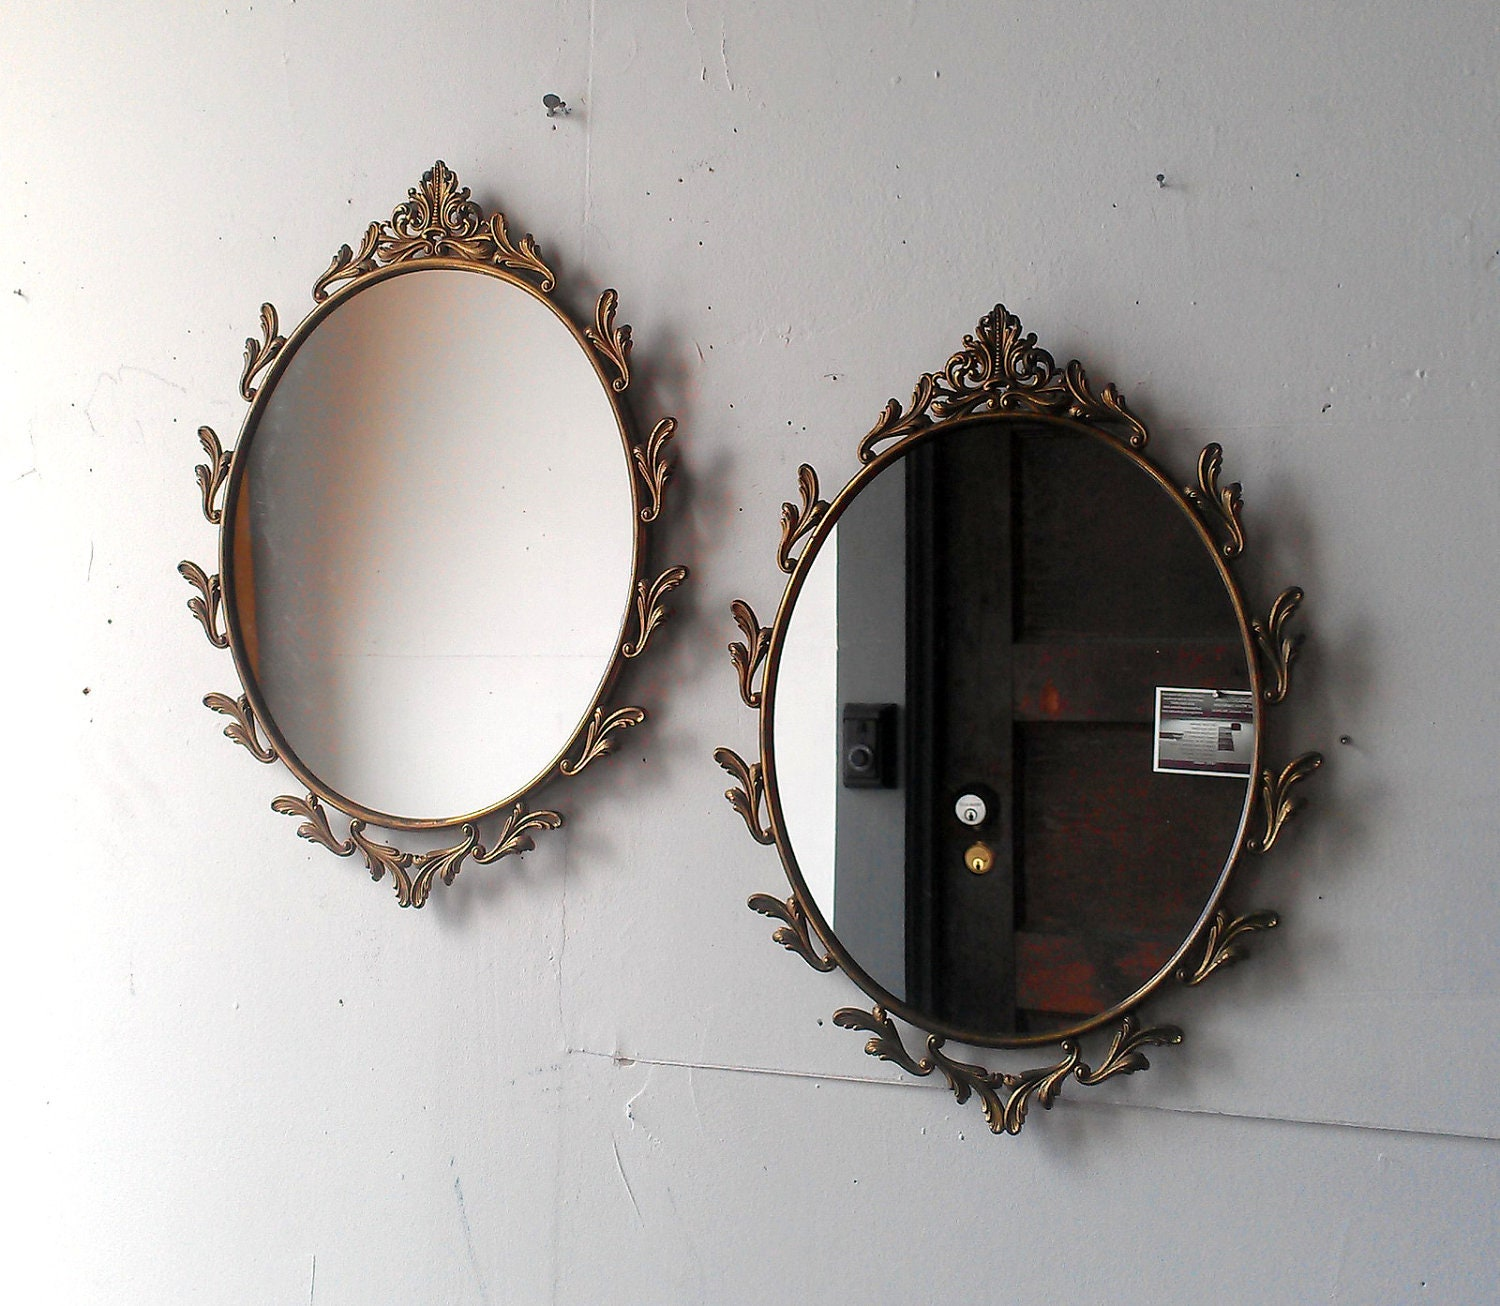 Oval Mirror Set in Ornate Vintage Metal Italy Frames - 15 x 11 inch - SecretWindowMirrors